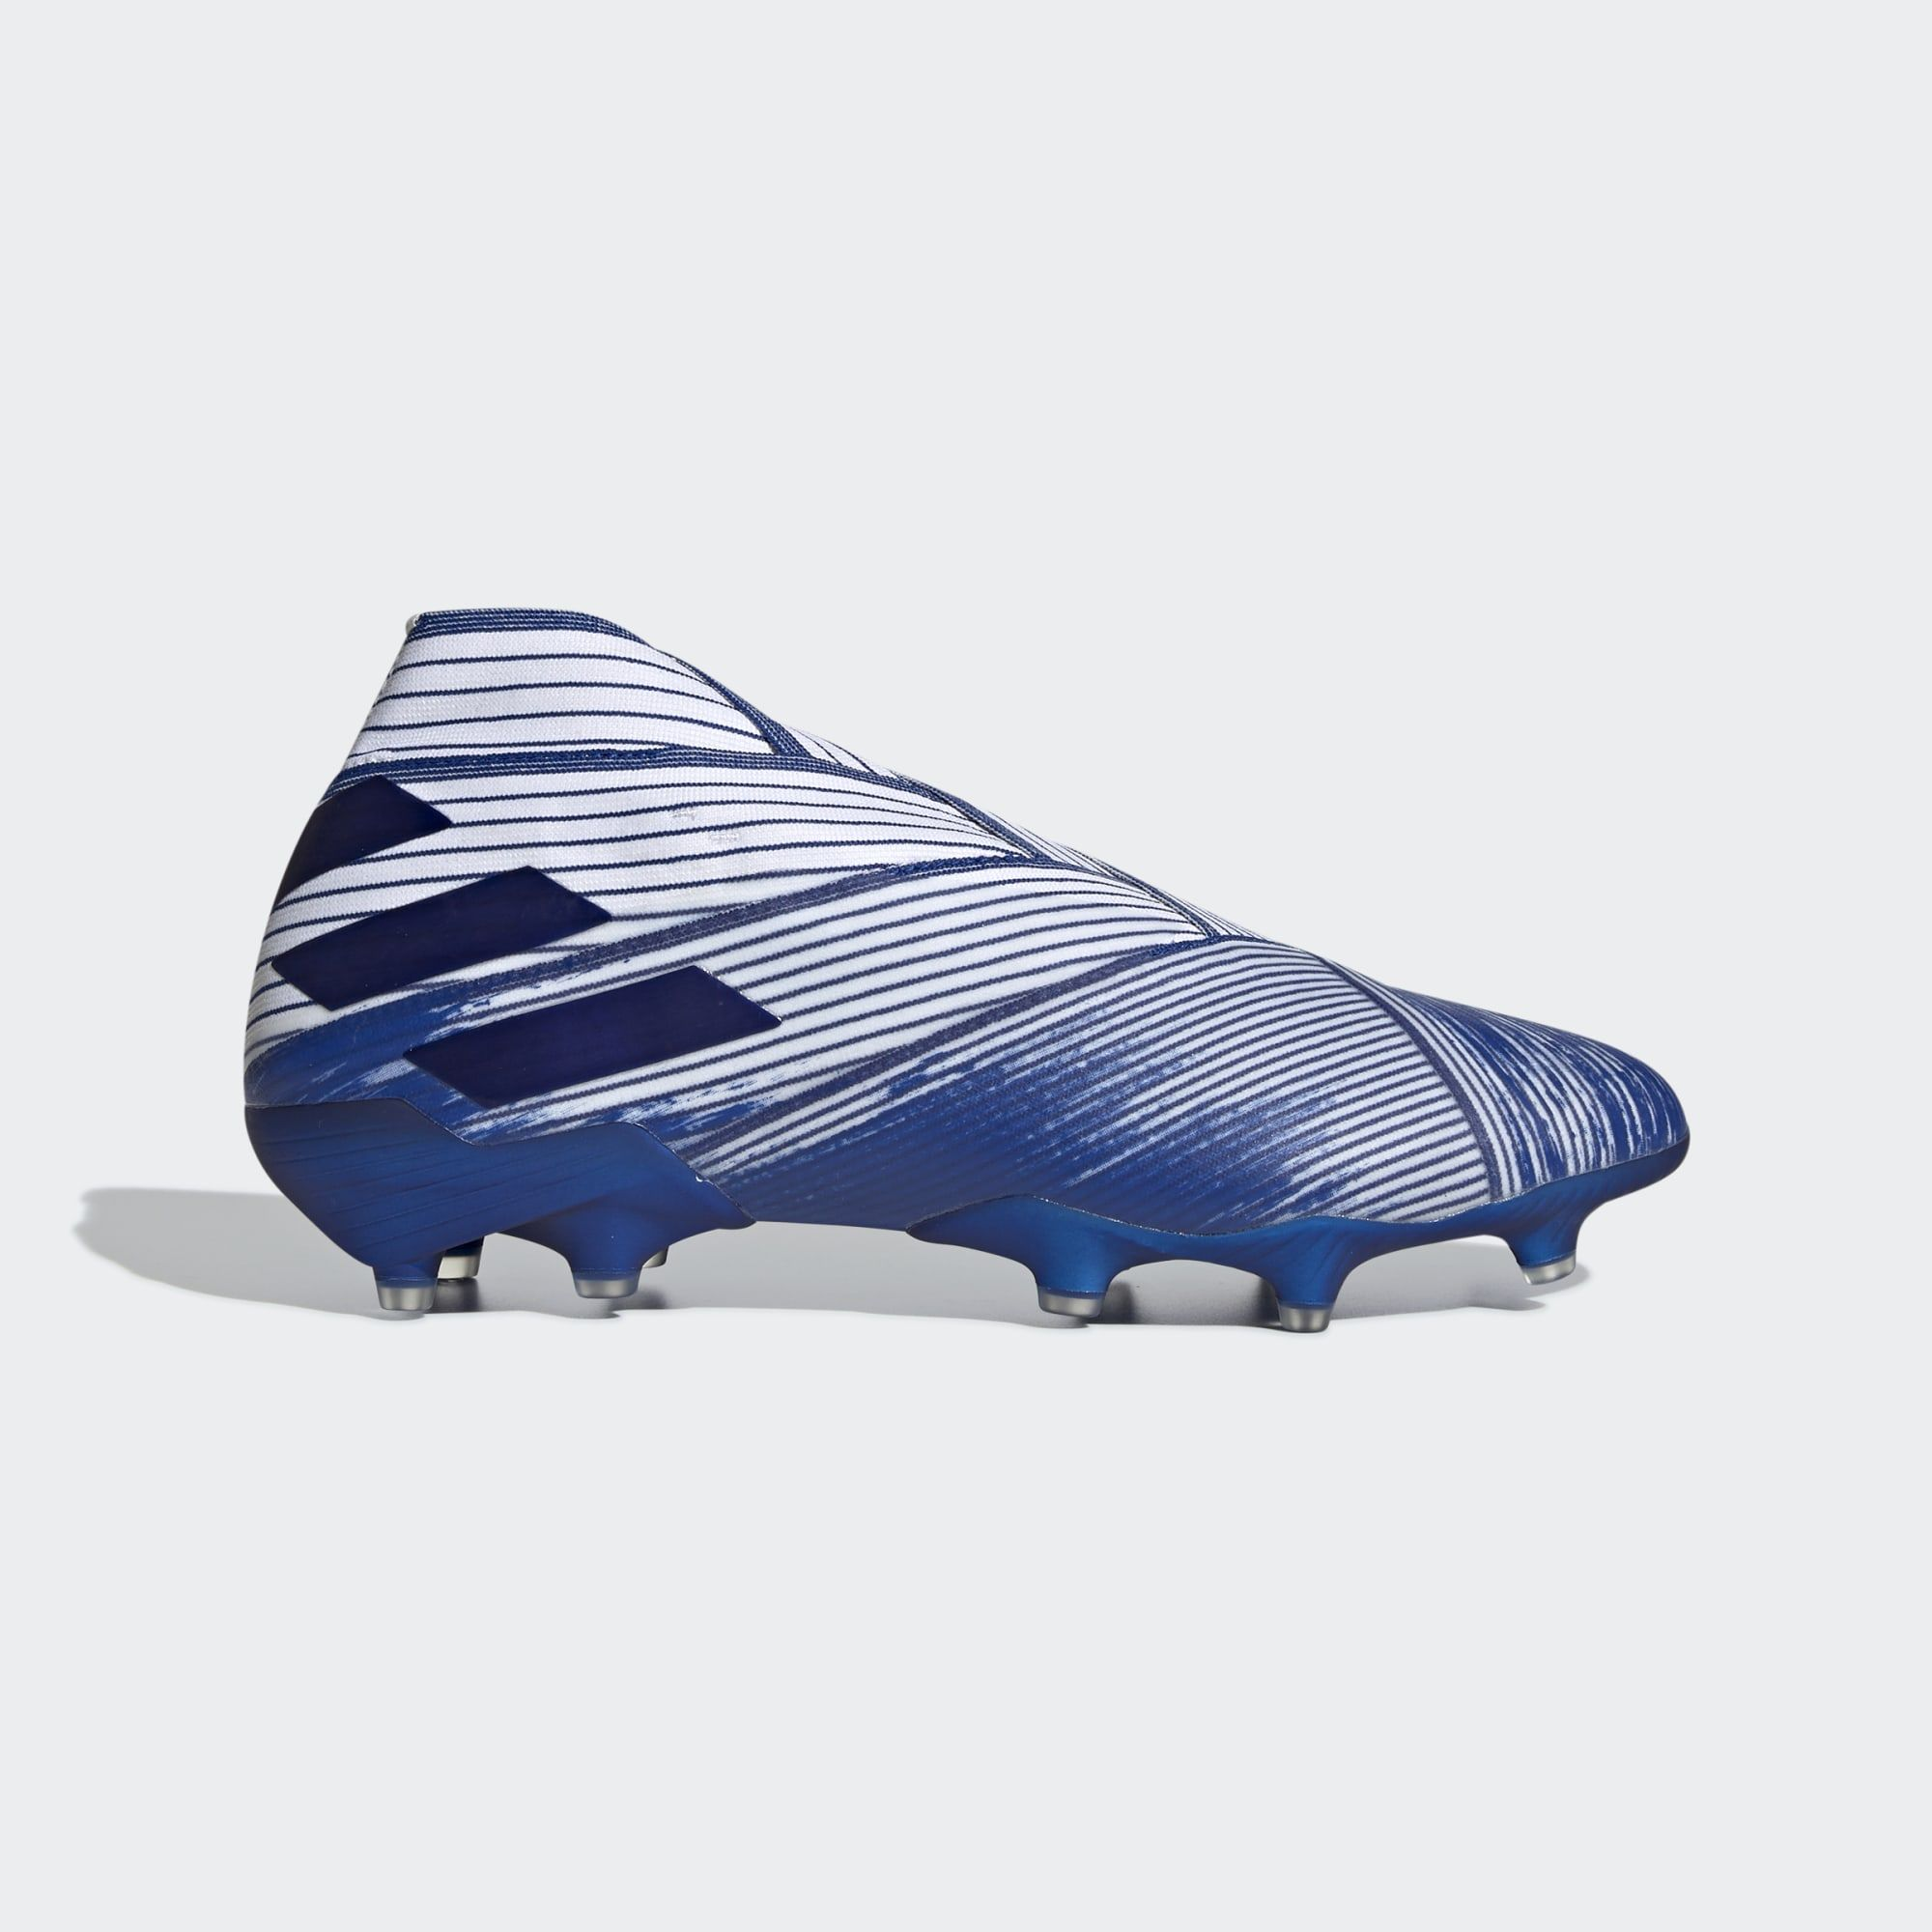 Adidas Nemeziz 19 Mutator Firm Ground Boots Team Royal Blue Cloud White Core Black Adidasfootball In 2020 Cleats Roller Skating Adidas